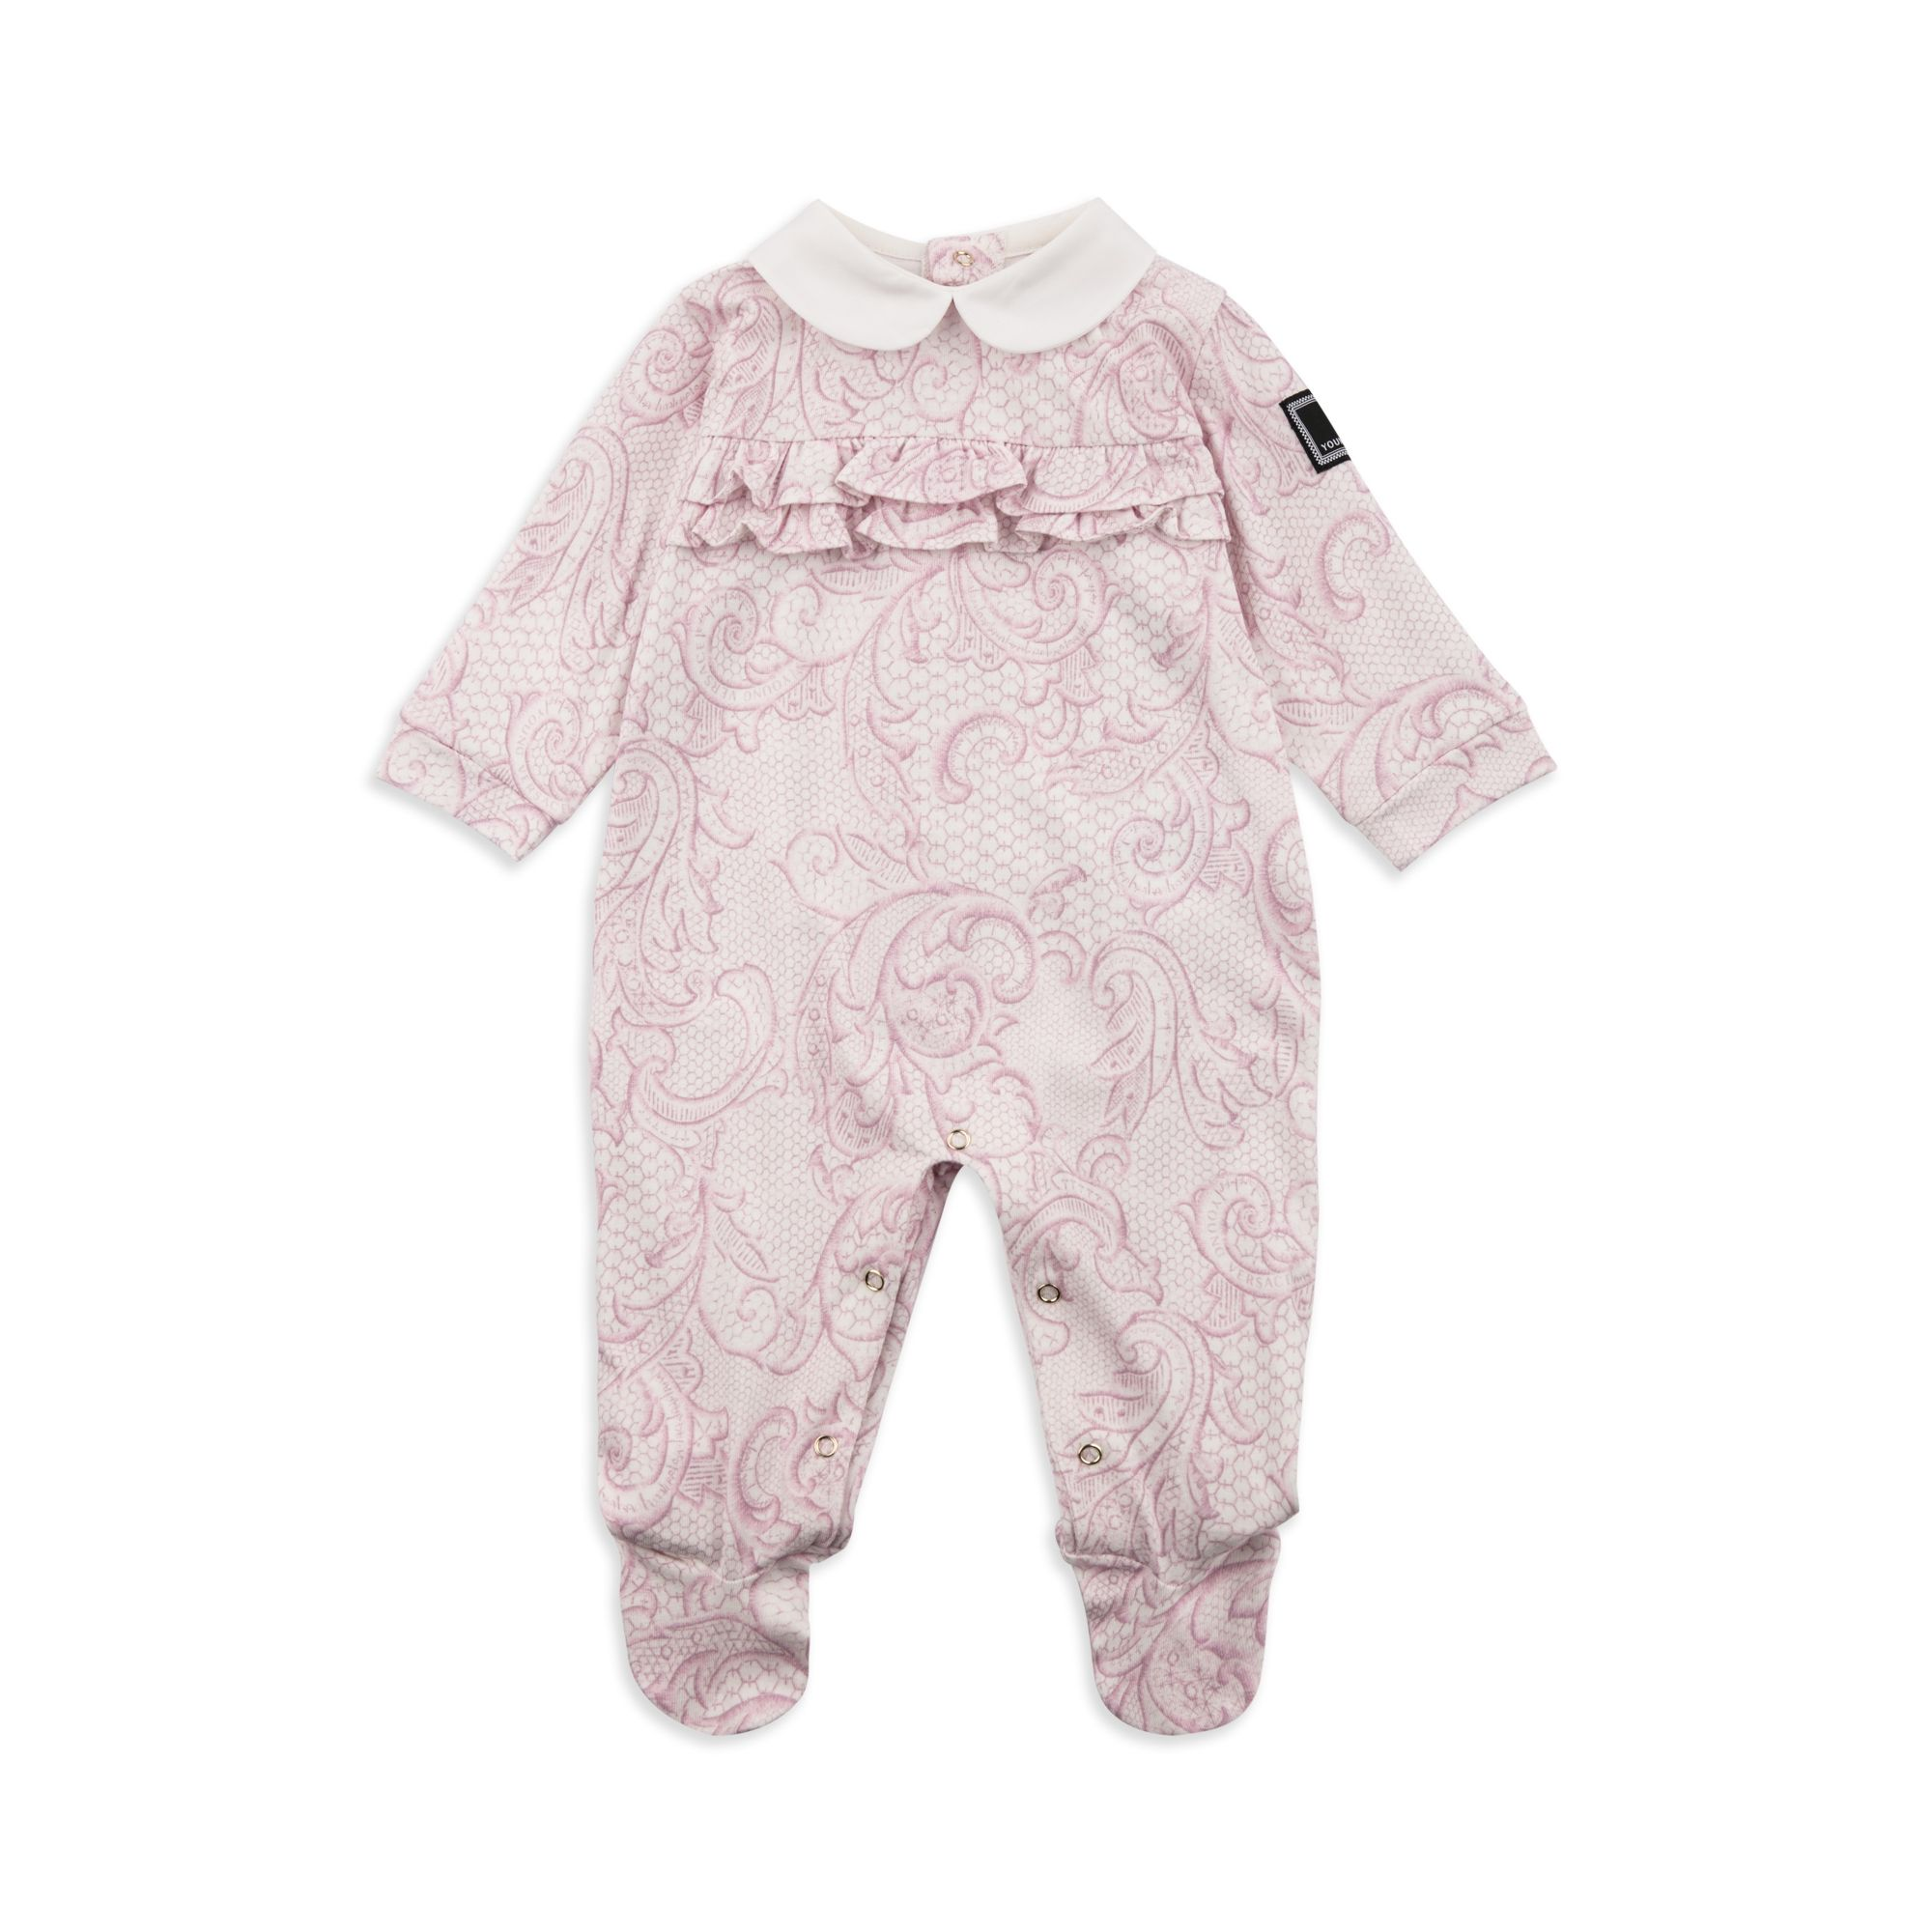 6226c7774 YOUNG VERSACE Baby Girls Baroque Coverall - Pink Baby girls shortall • Soft  stretchy cotton • Popper fastenings • Peter Pan collar • Colourful Baroque  print ...